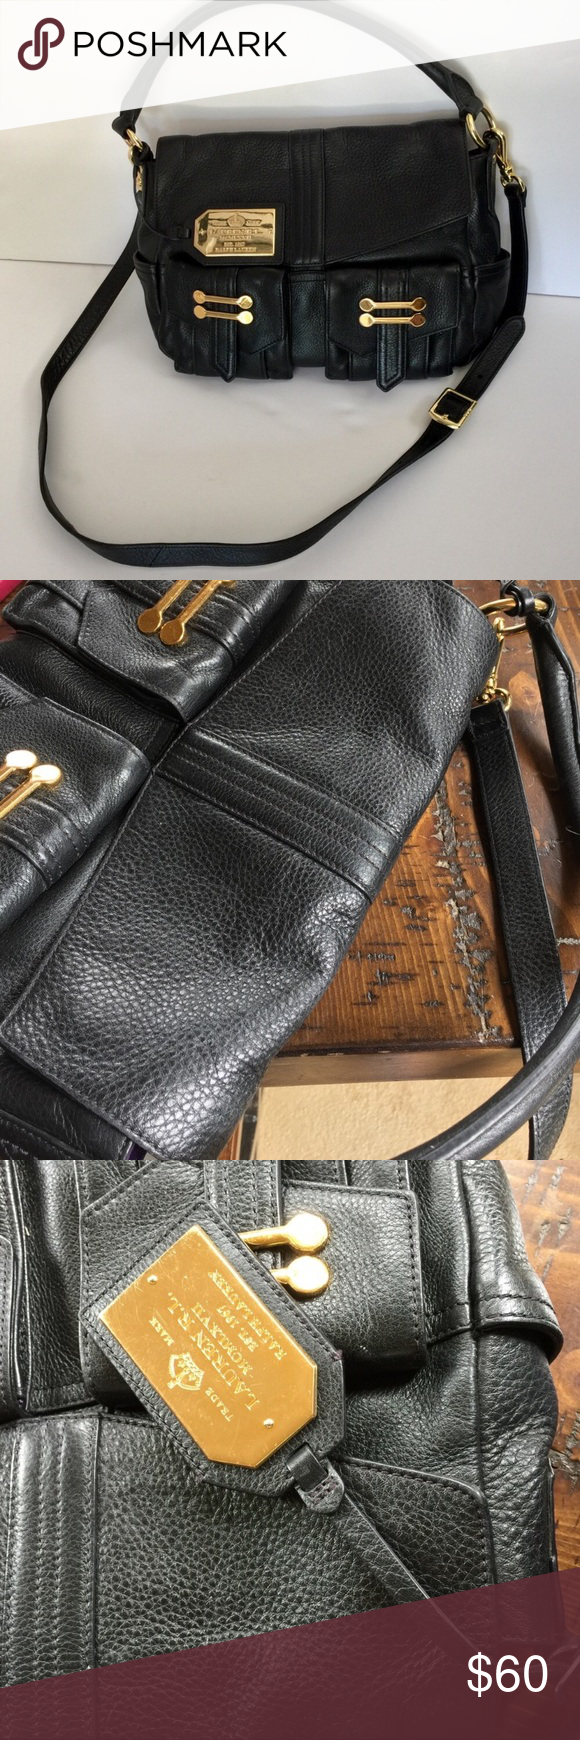 54e8b40dabd Ralph Lauren leather bag   Crossbody bags, Conditioning and Leather